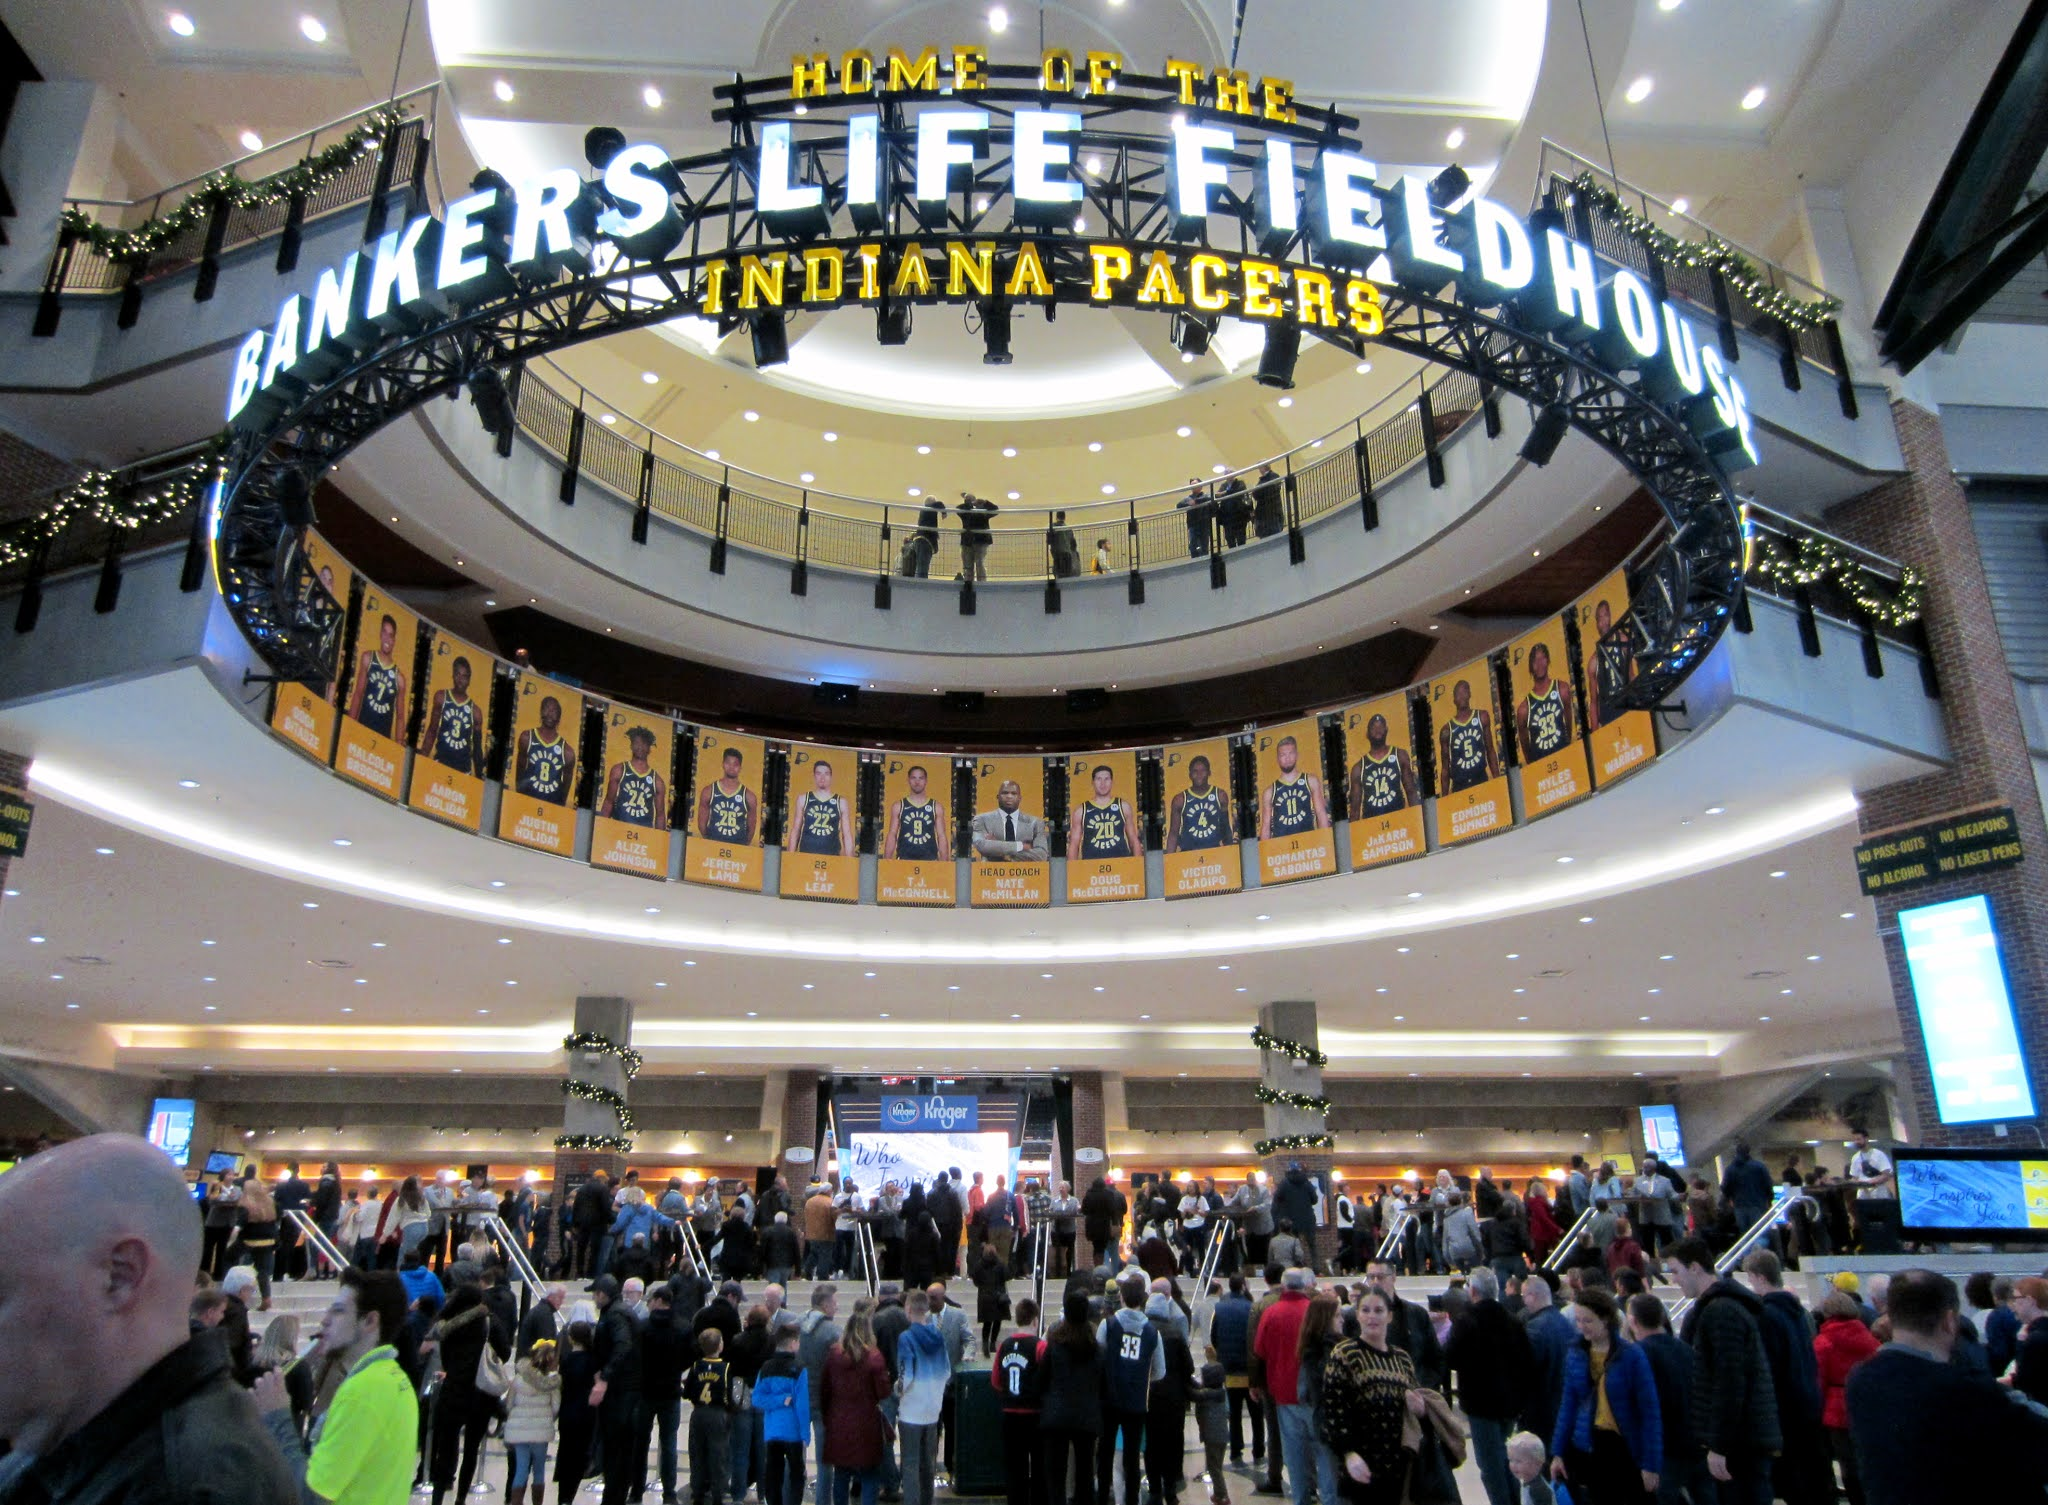 The Bankers Life Fieldhouse atrium leading into the arena itself